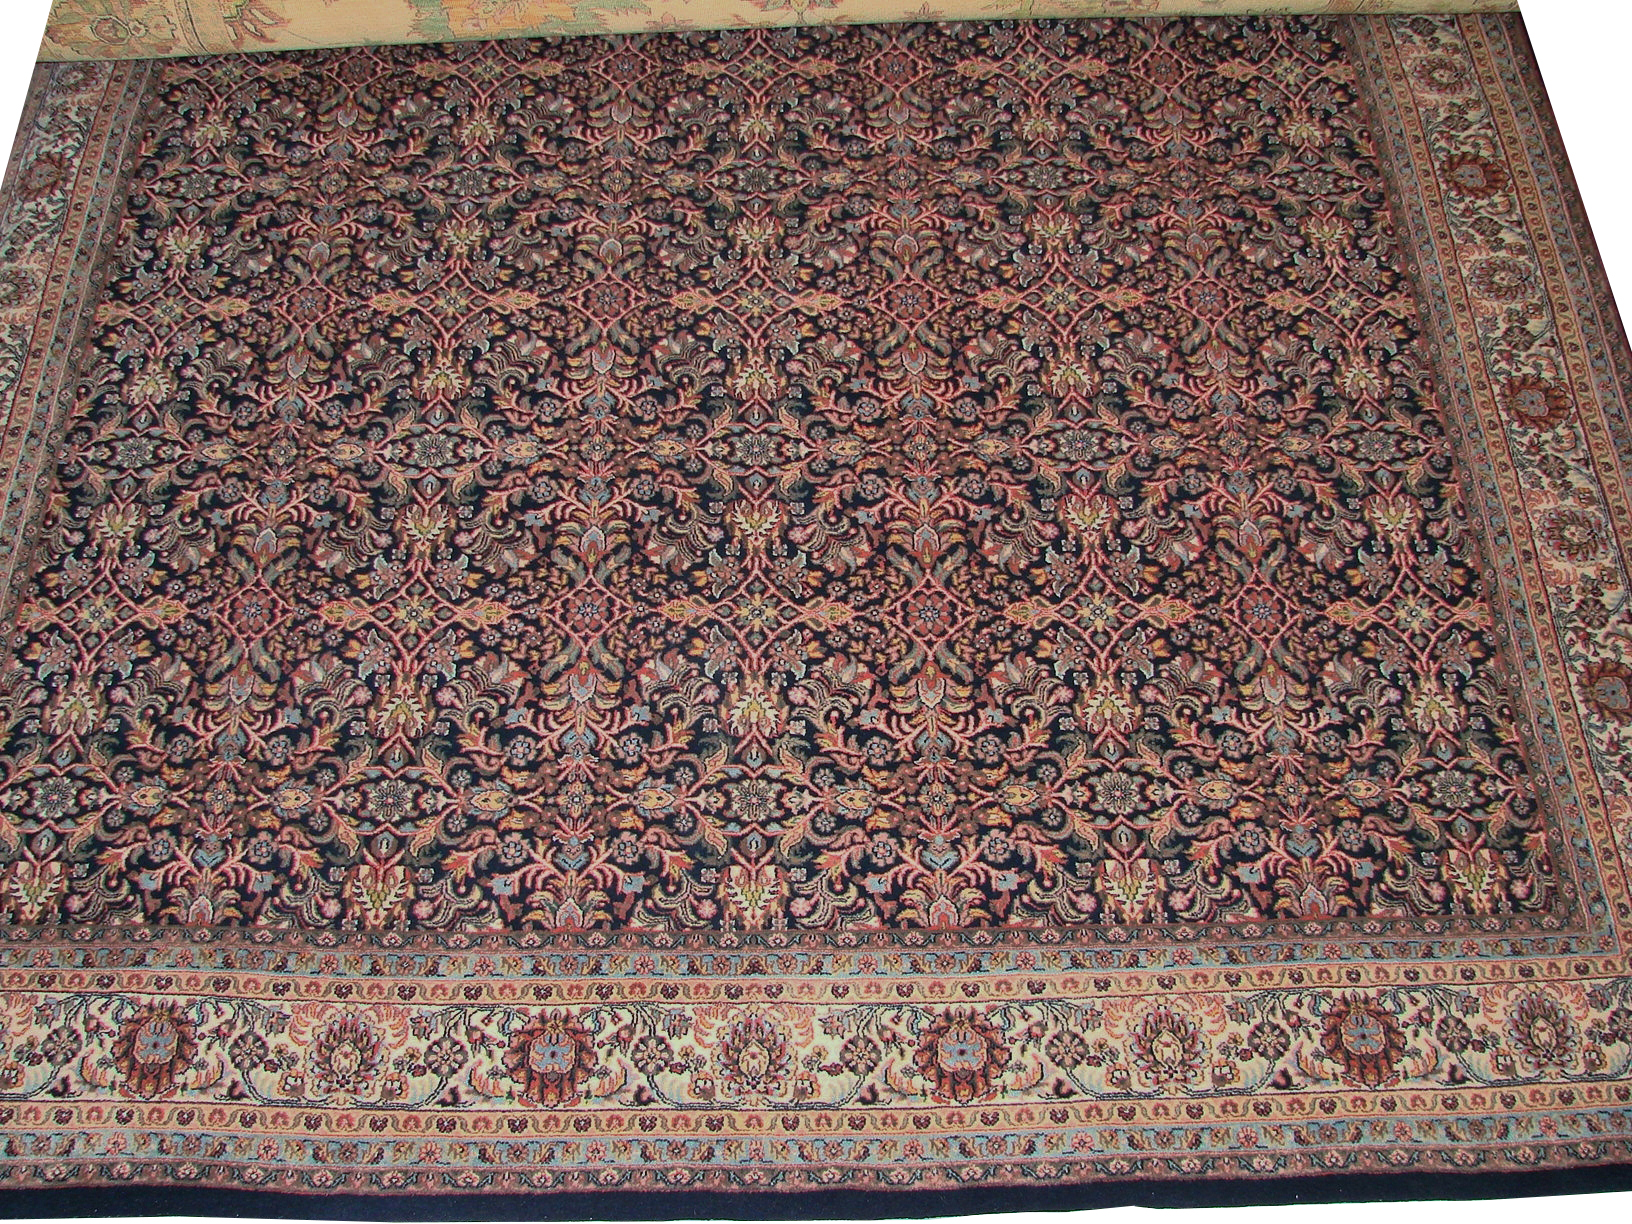 8x10 Traditional Hand Knotted Wool Area Rug - MR0981